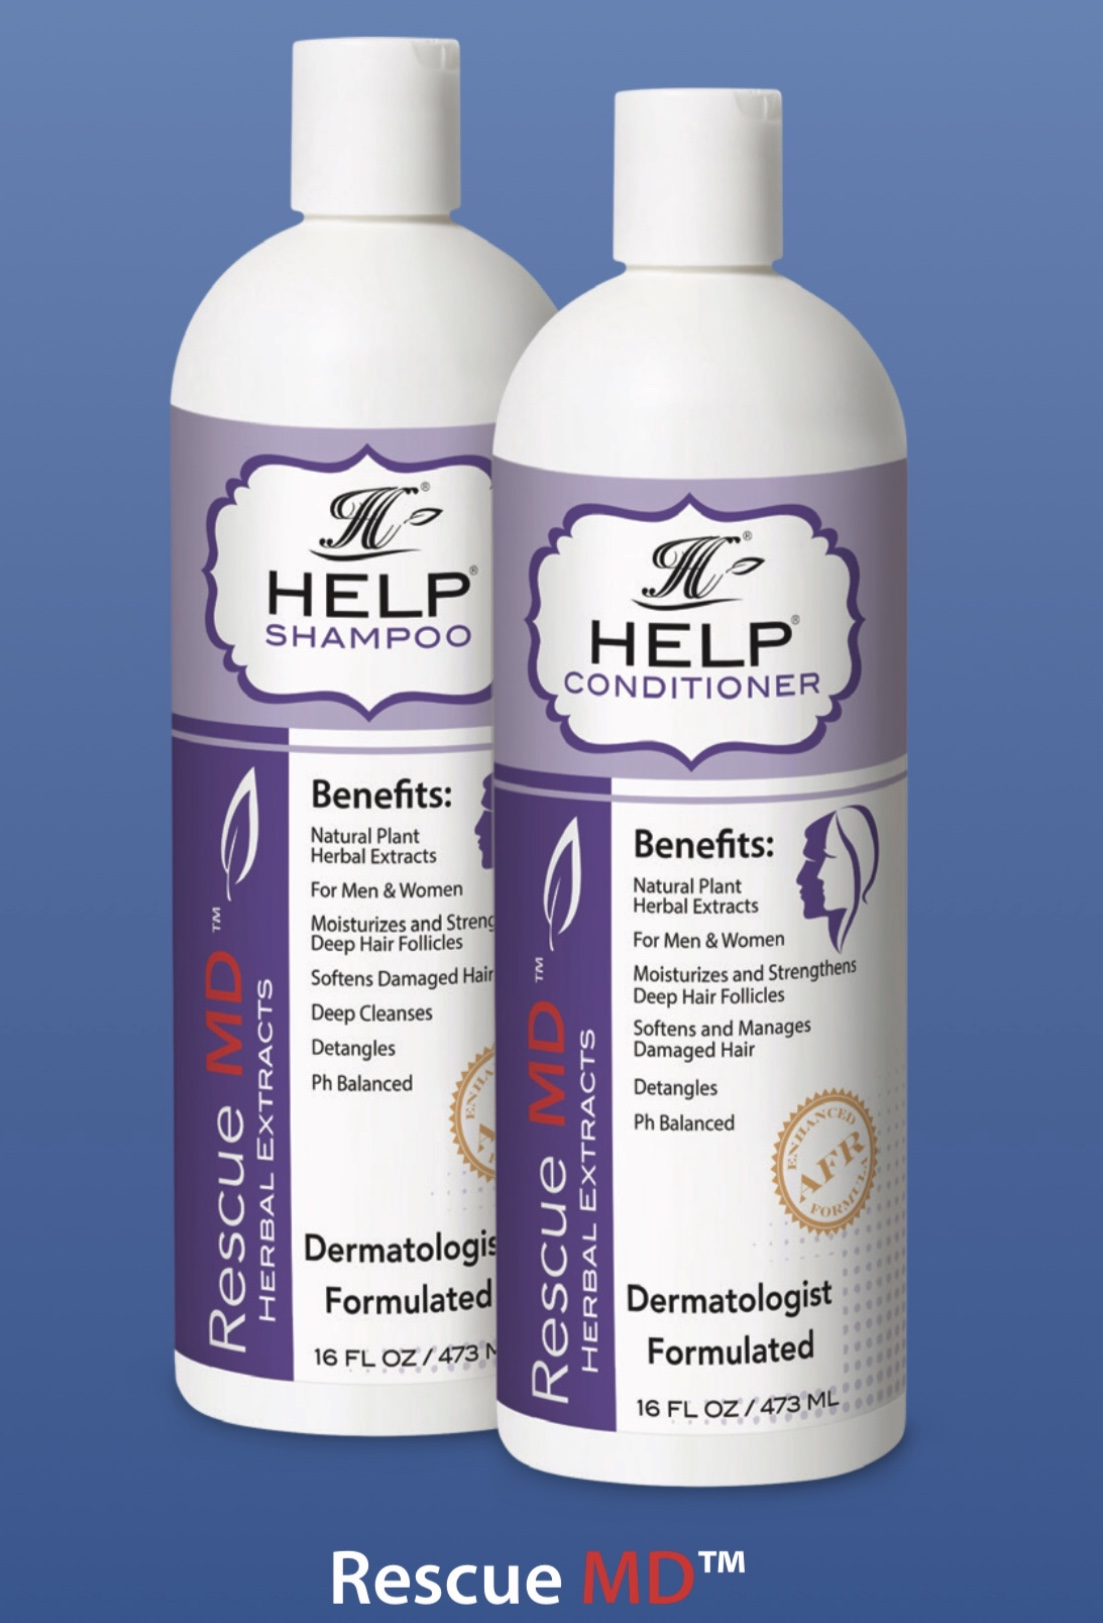 help-shampoo-and-help-conditioner-rescue-md.jpg